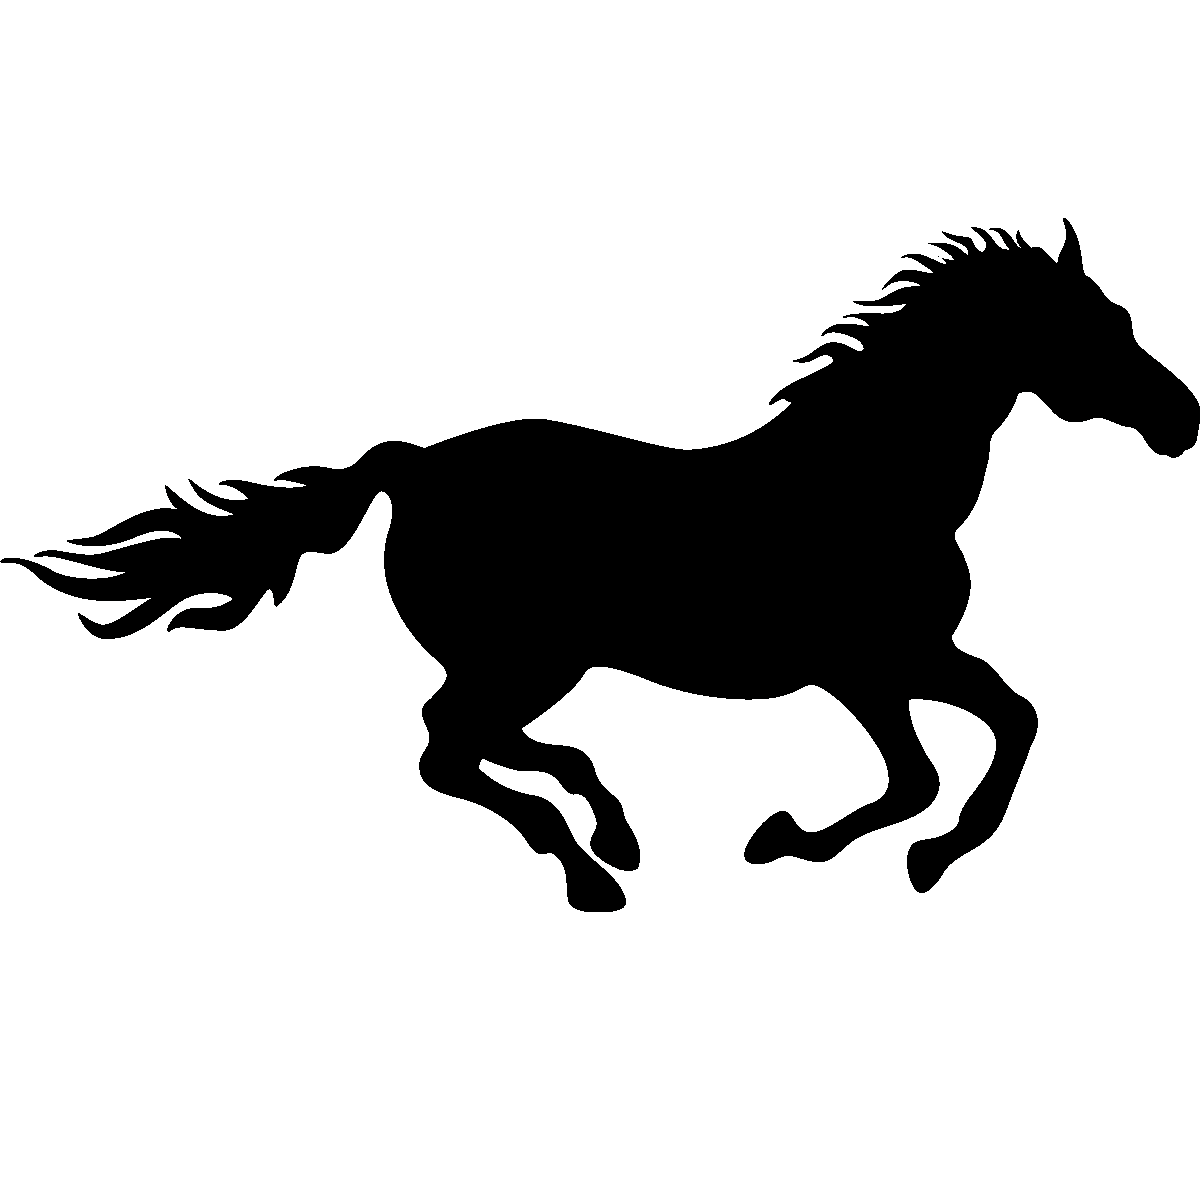 Running Horse Silhouette Png Hd Png Pictures Vhv Rs